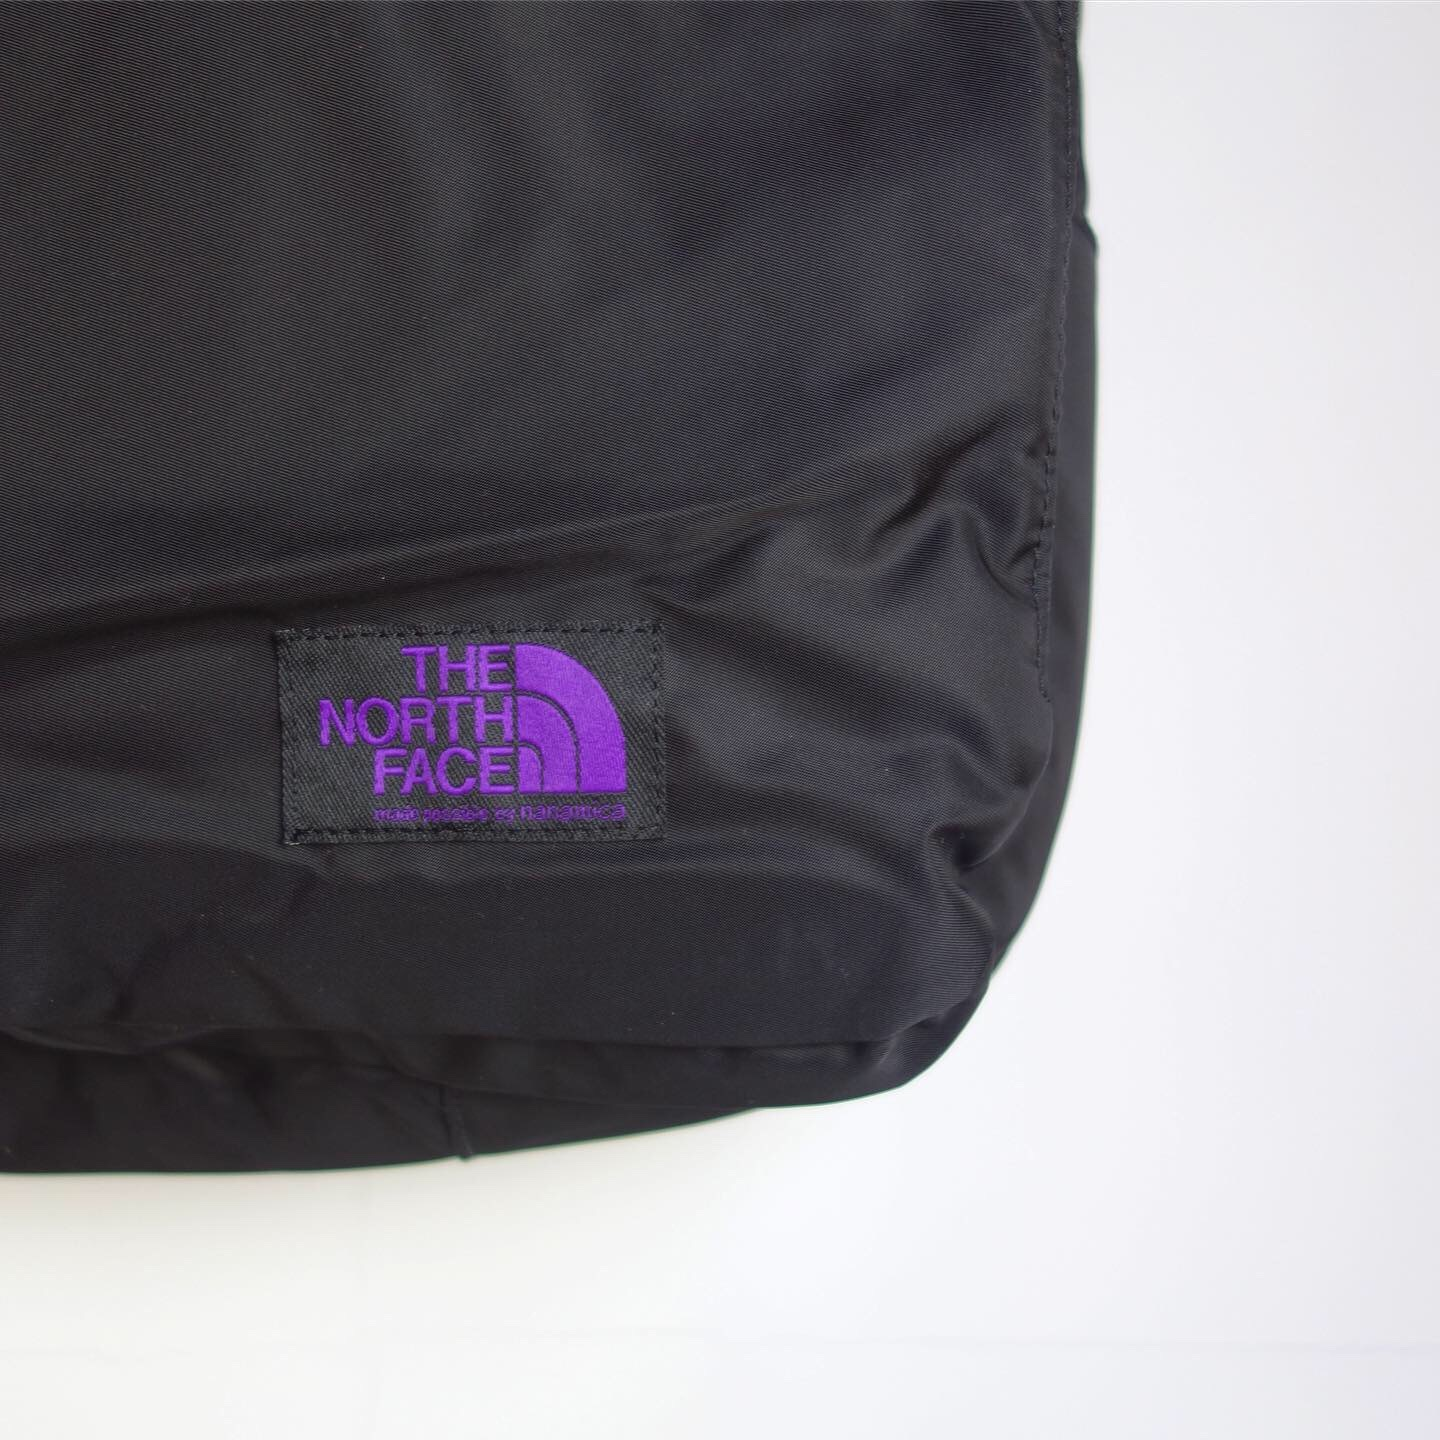 THE NORTH FACE PURPLE LABEL : LIMONTA Nylon 3way Bag_a0234452_16023520.jpg